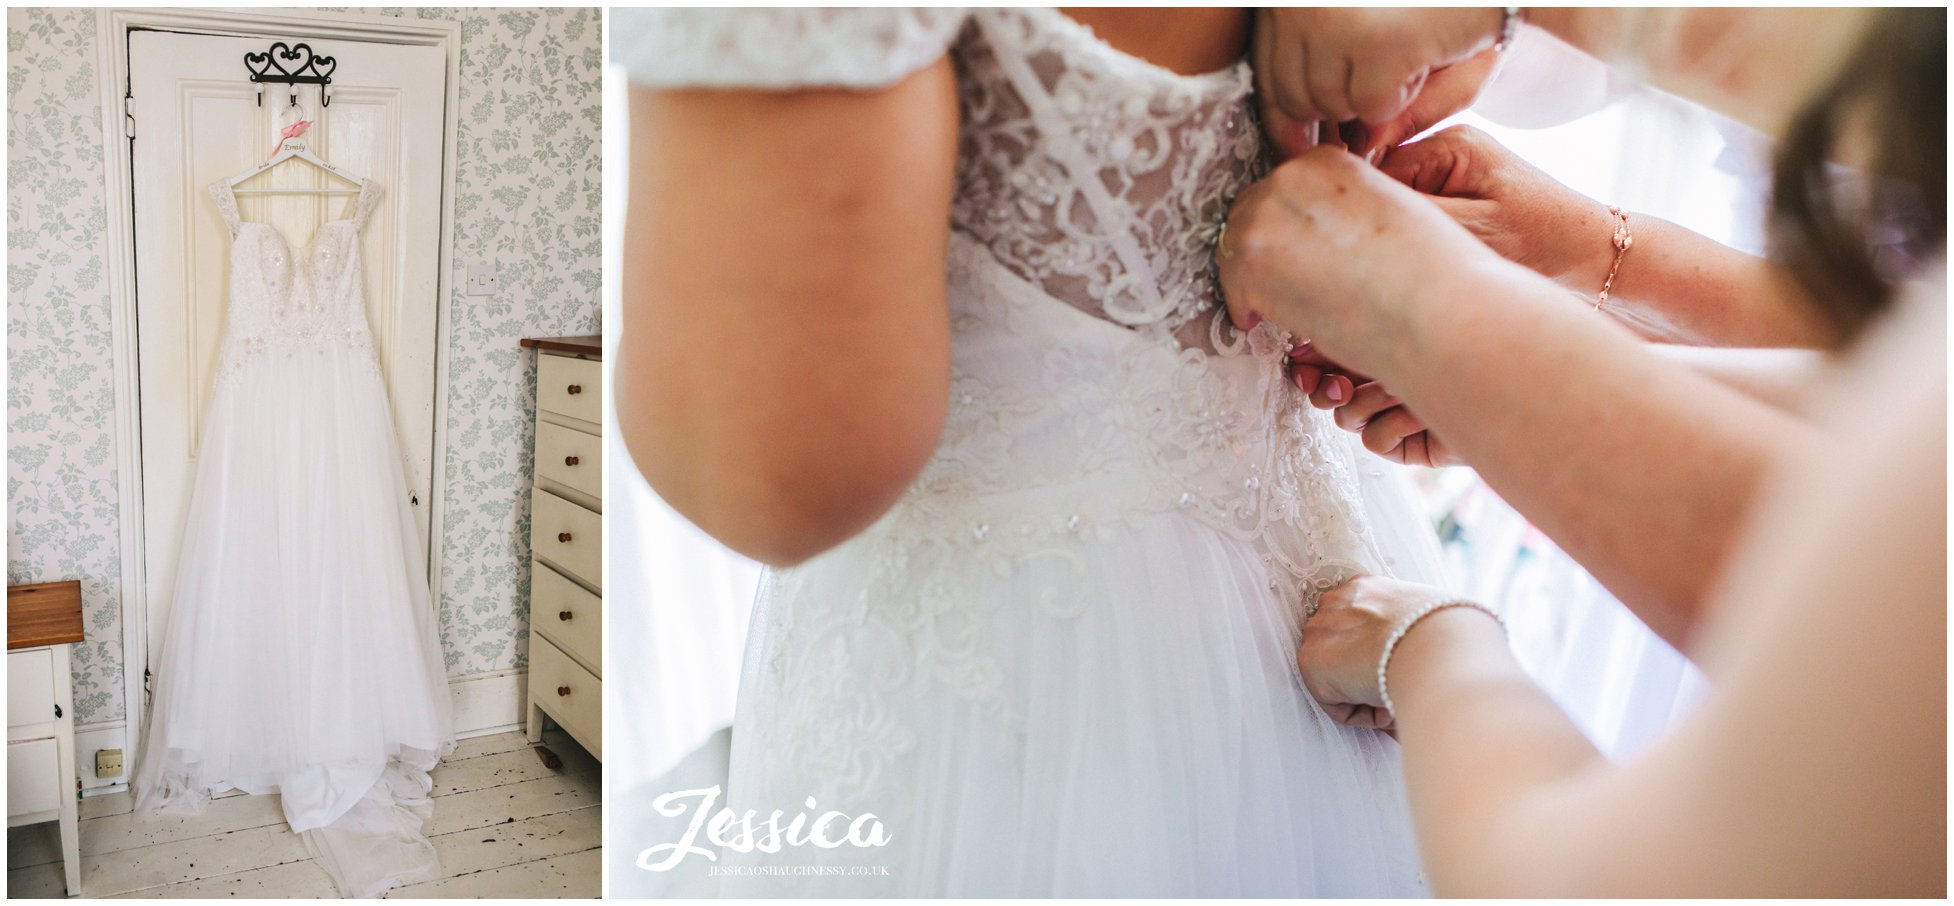 the brides family fasten the wedding dress buttons